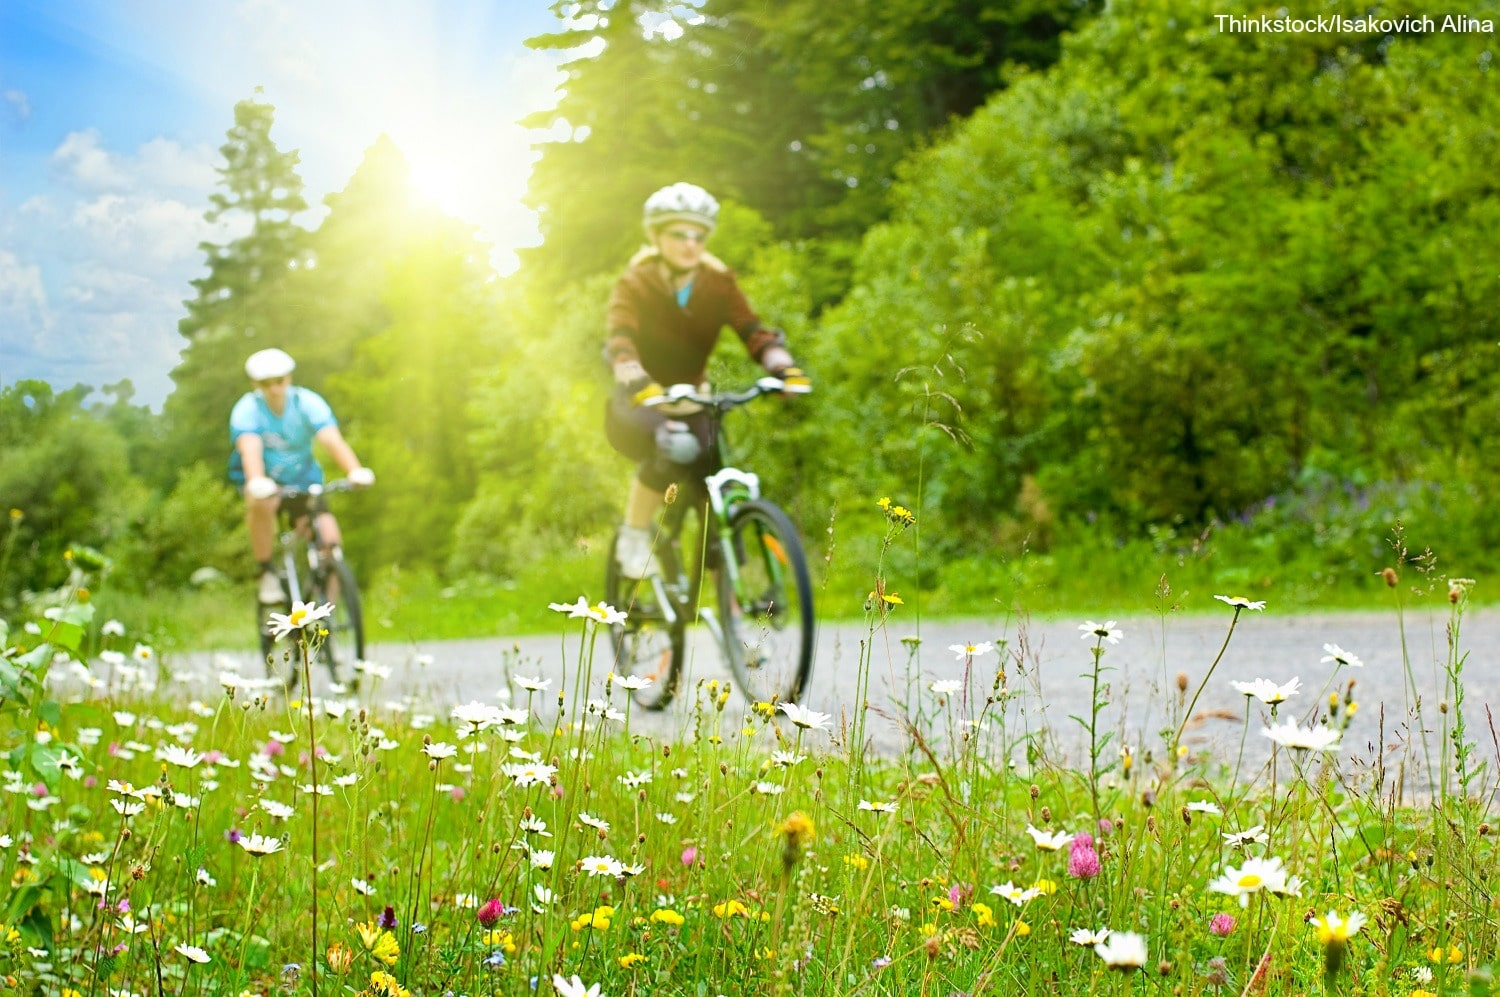 Have an Adventure on 6 of the Most Exciting Bike Trails in